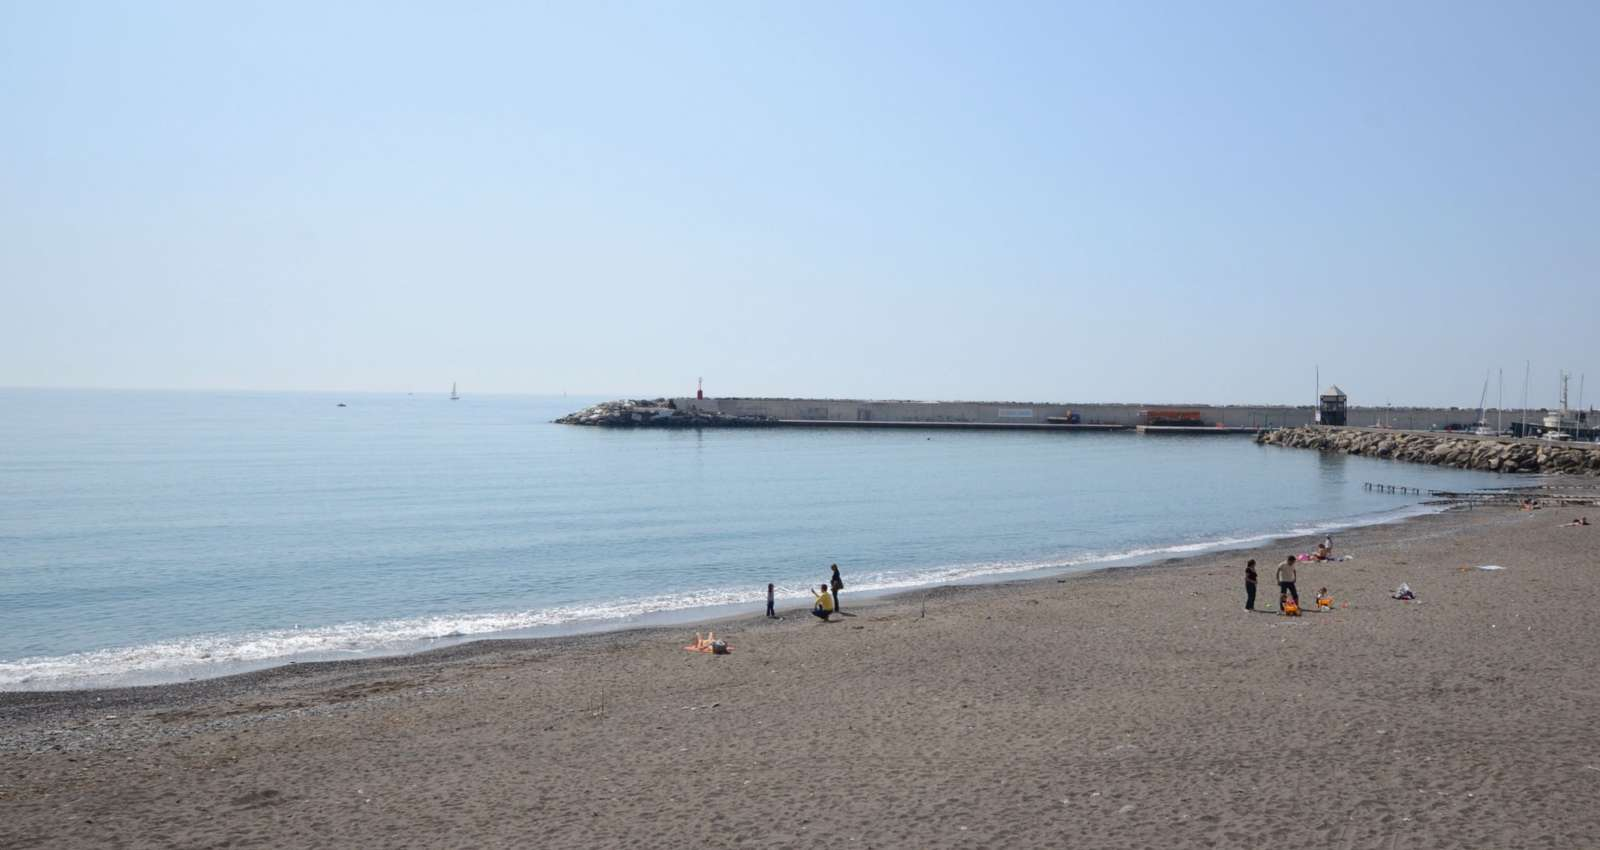 The beach in Lavagna